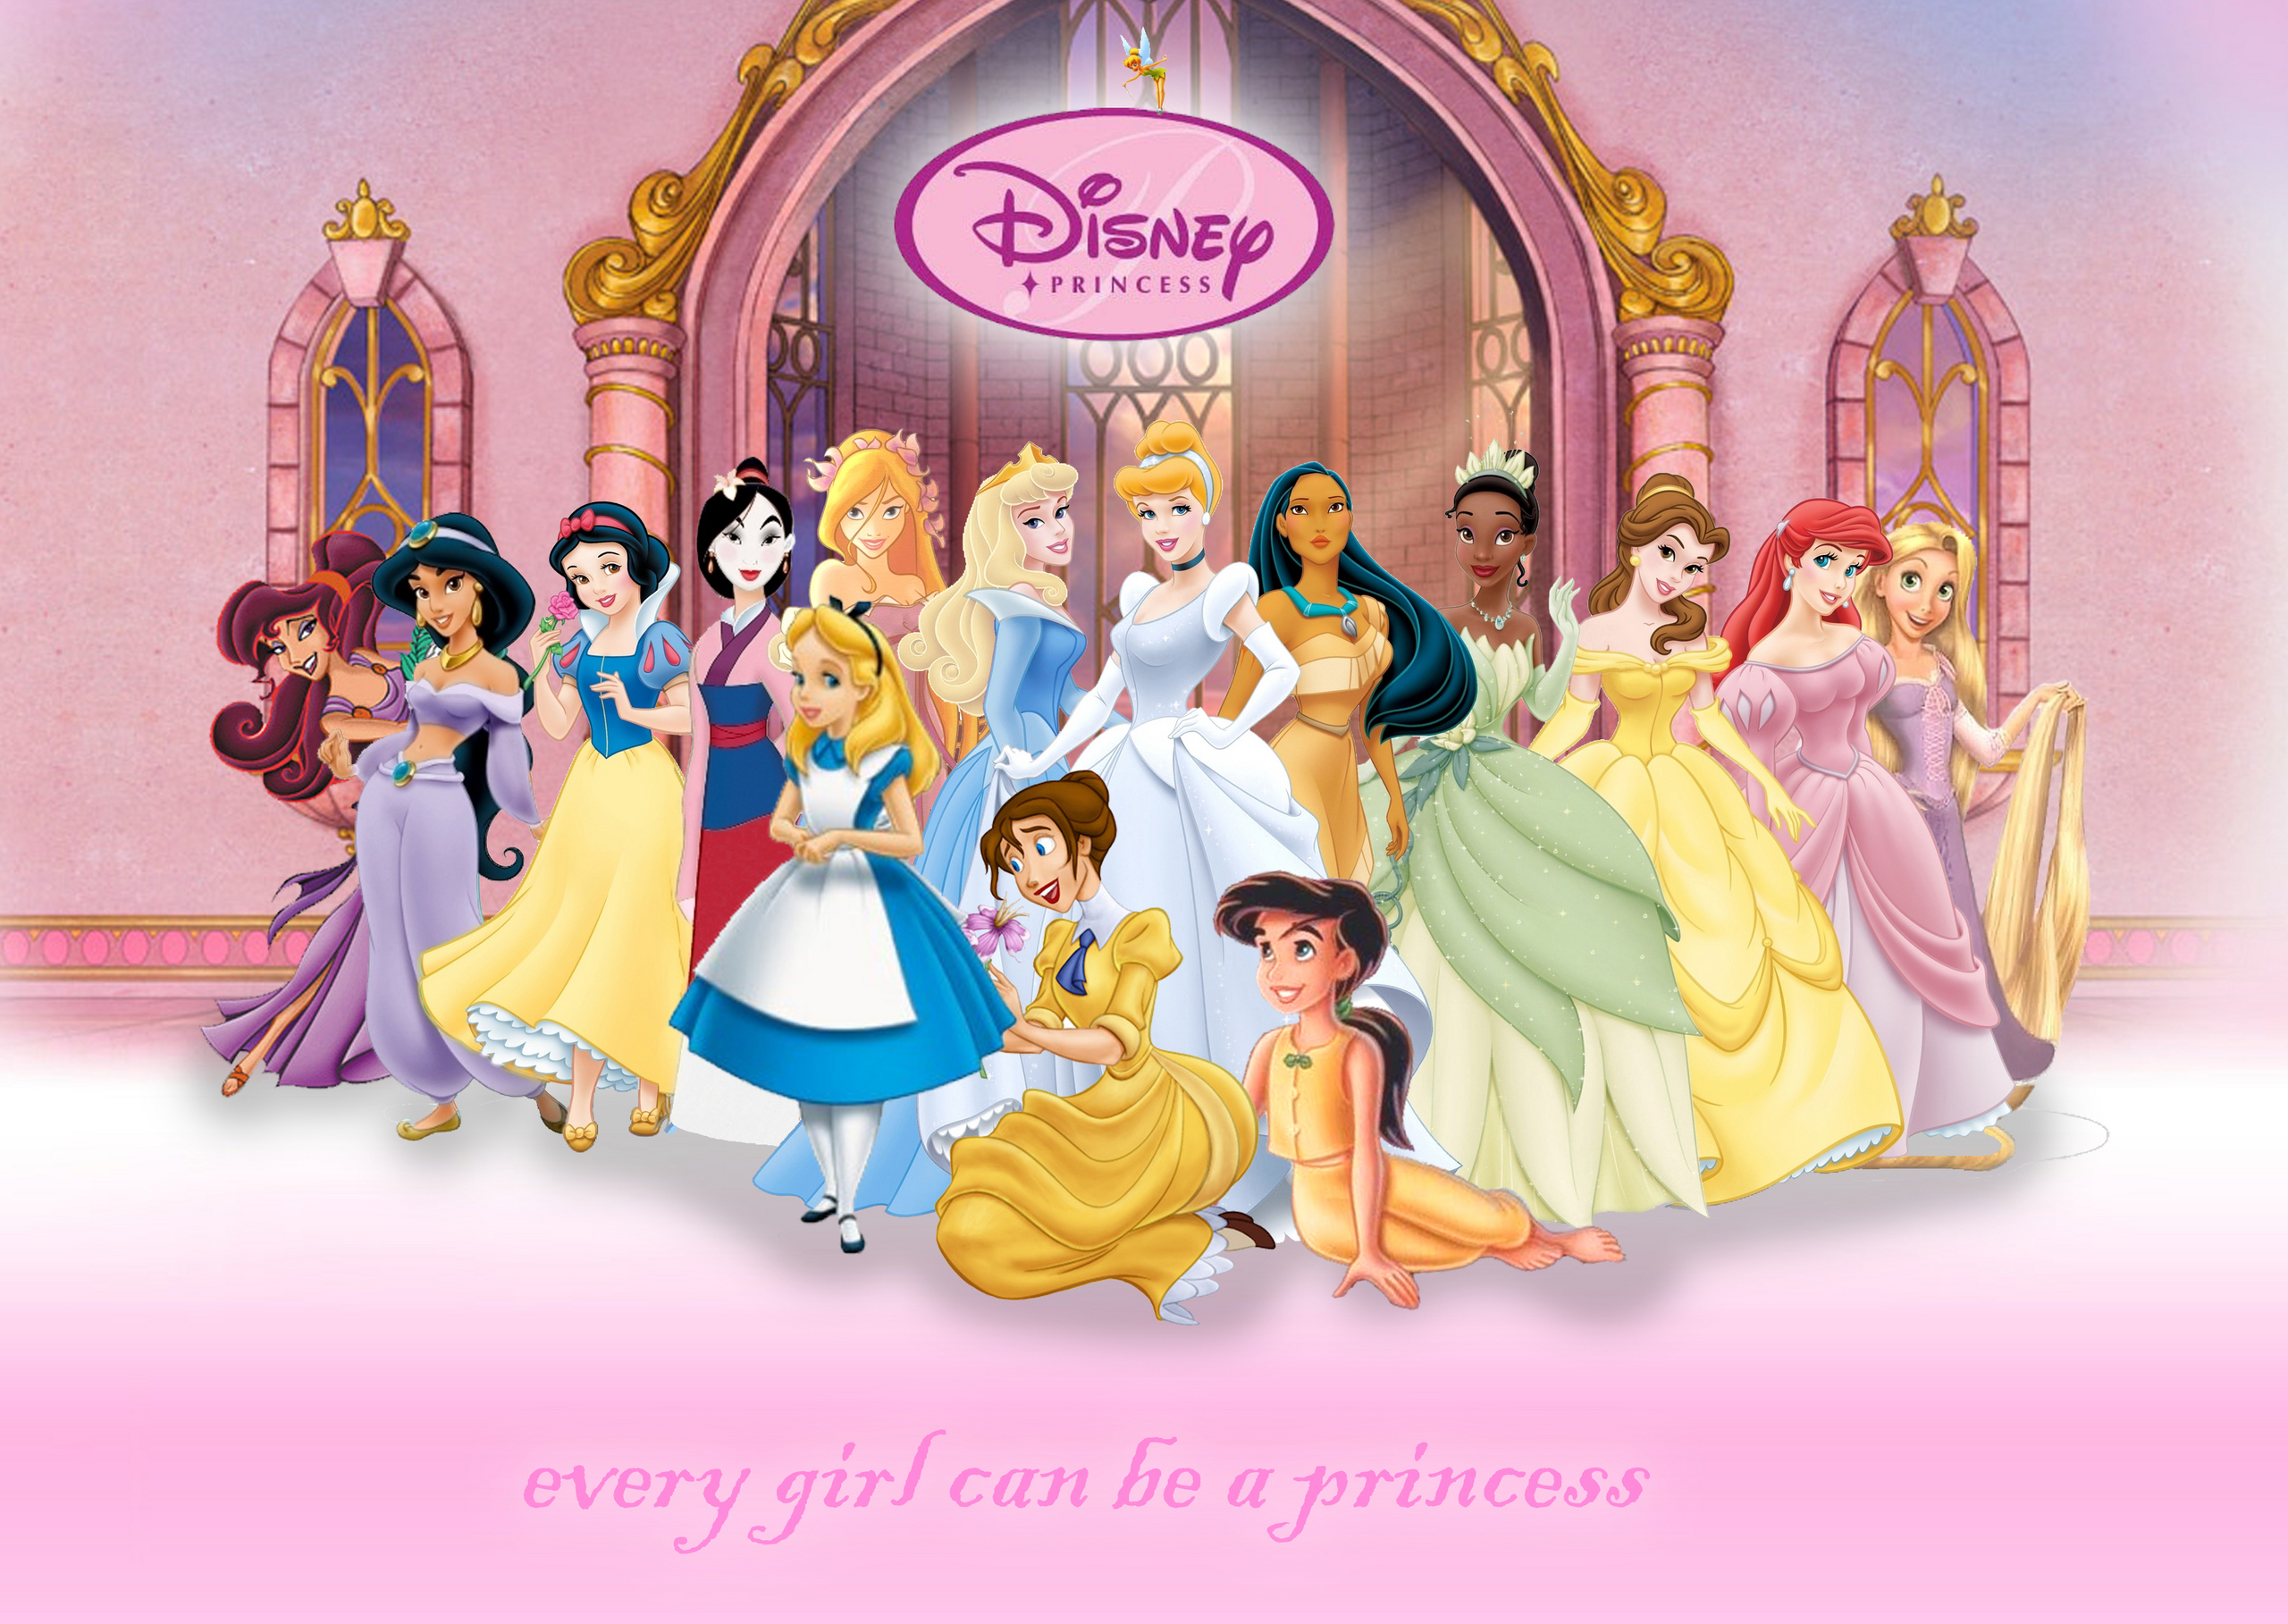 Disney princess disney princess